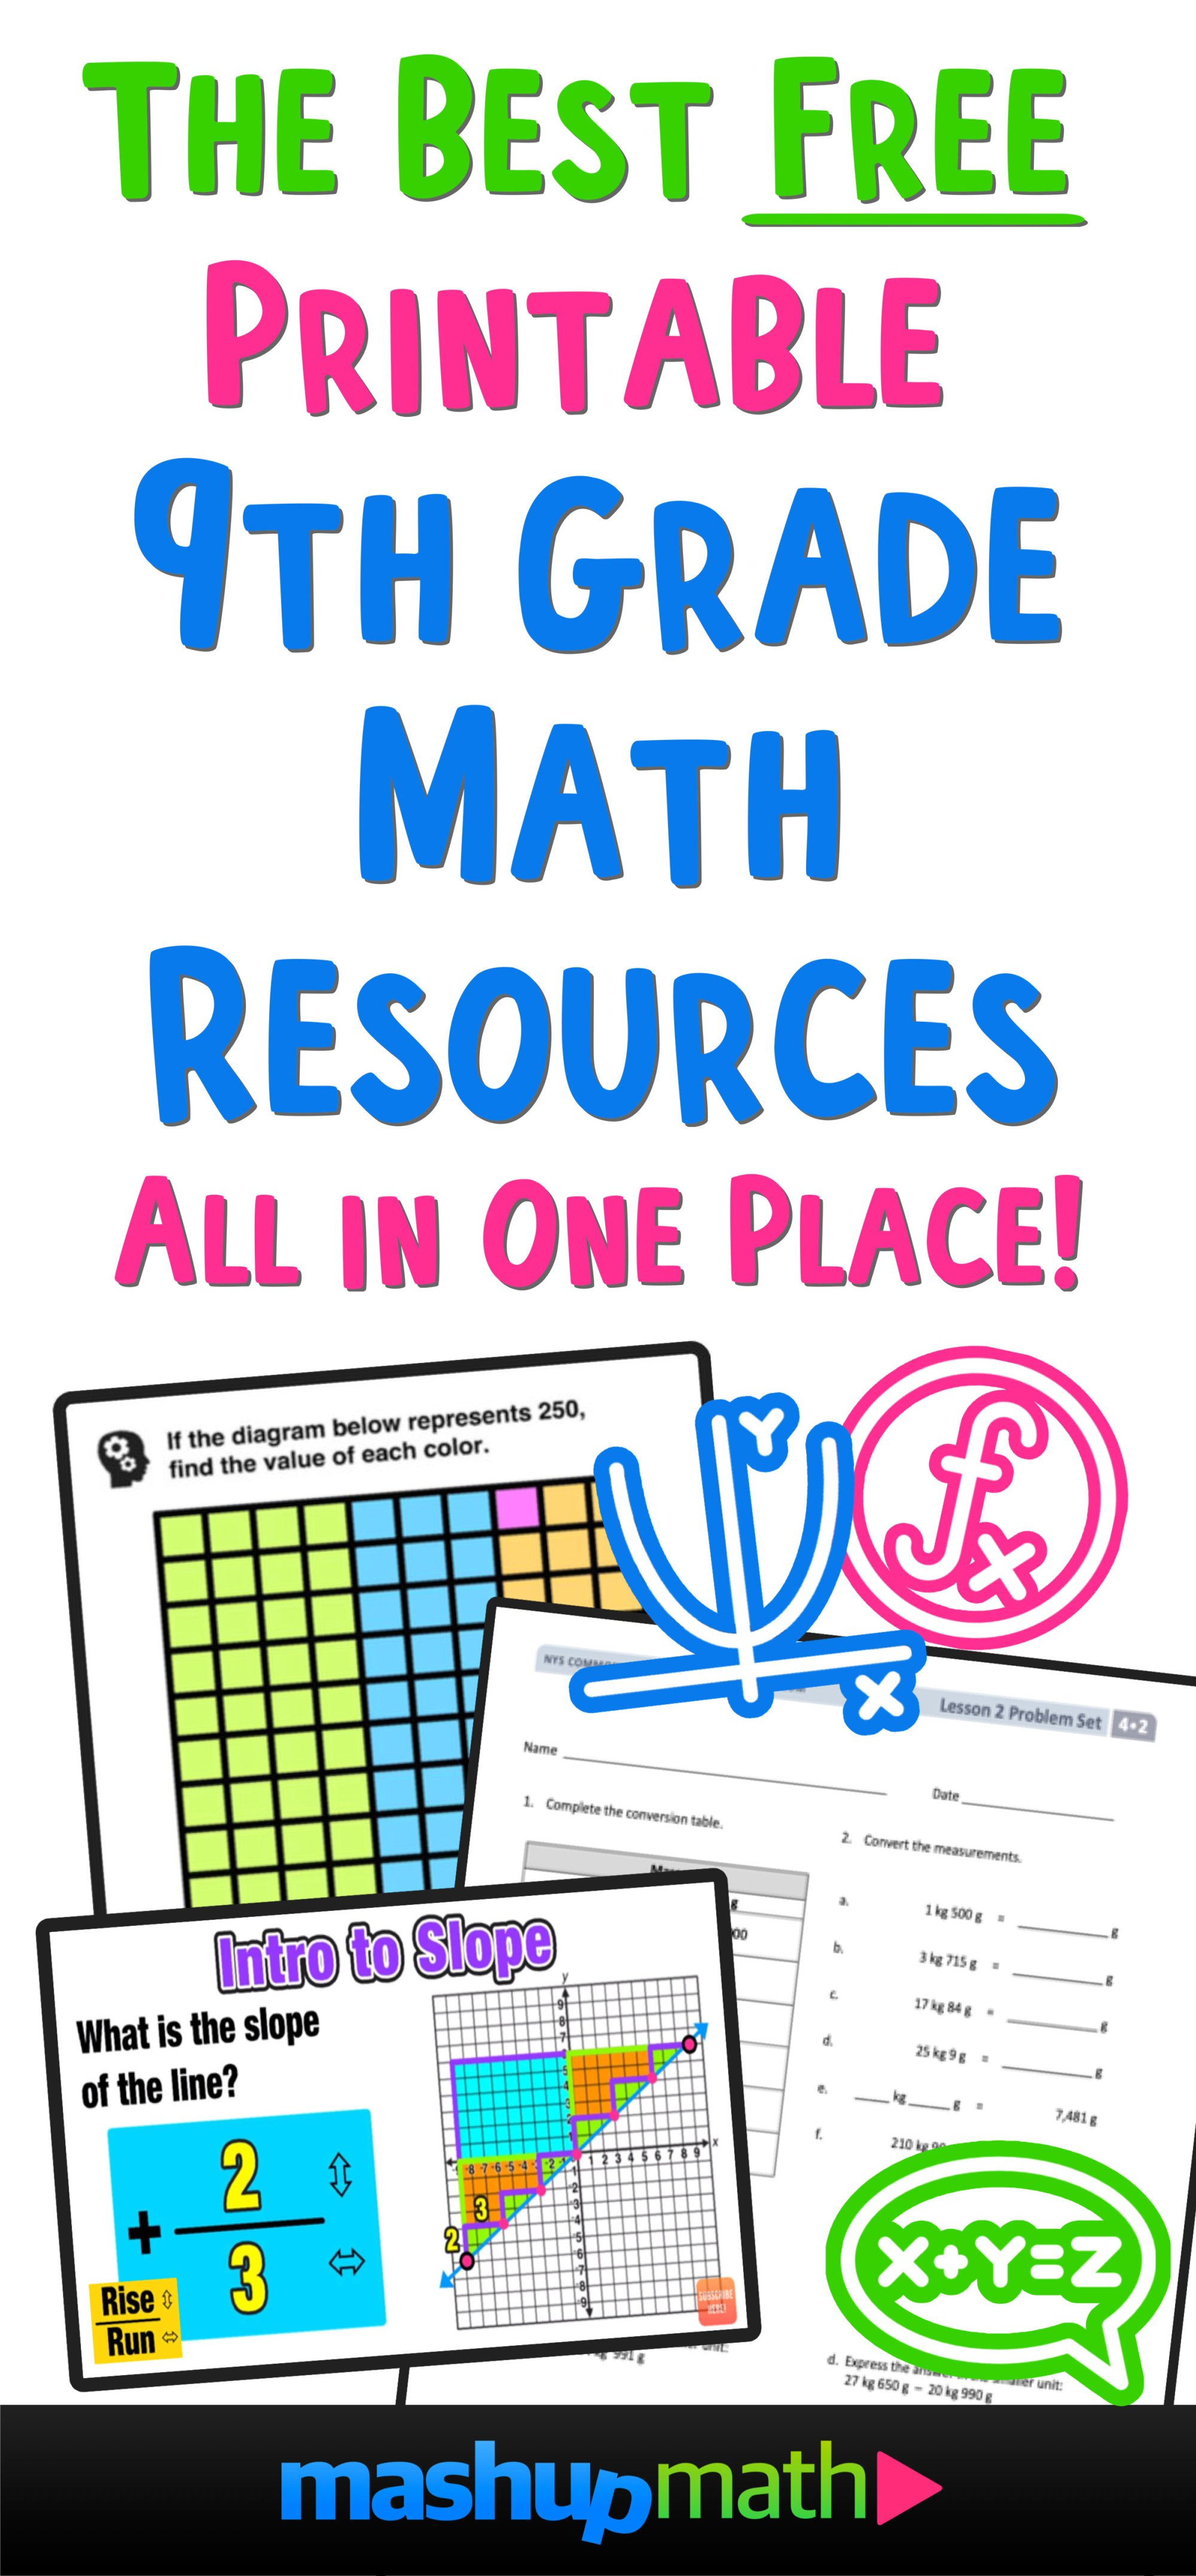 hight resolution of The Best Free 9th Grade Math Resources: Complete List! — Mashup Math